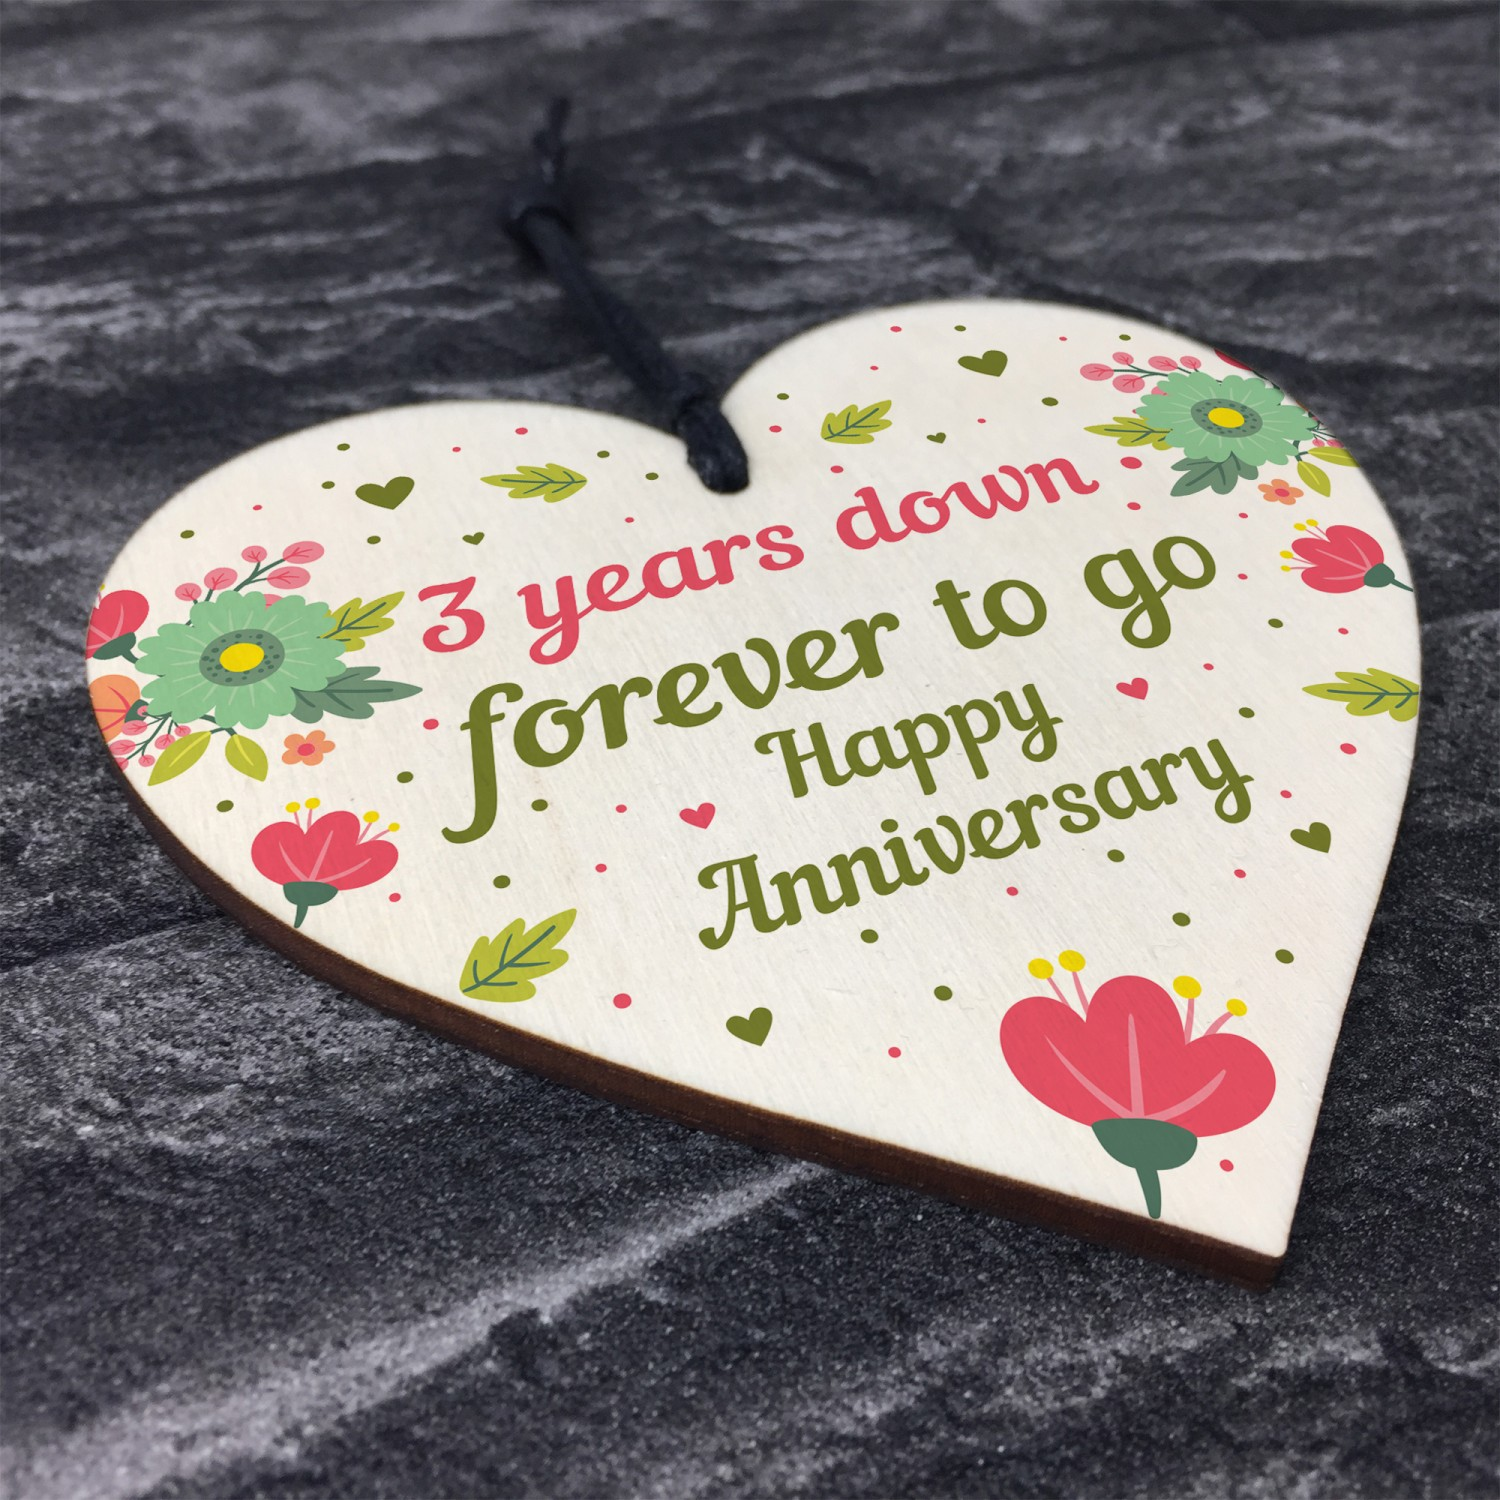 Funny 3rd Wedding Anniversary Gift Wooden Heart Husband Wife